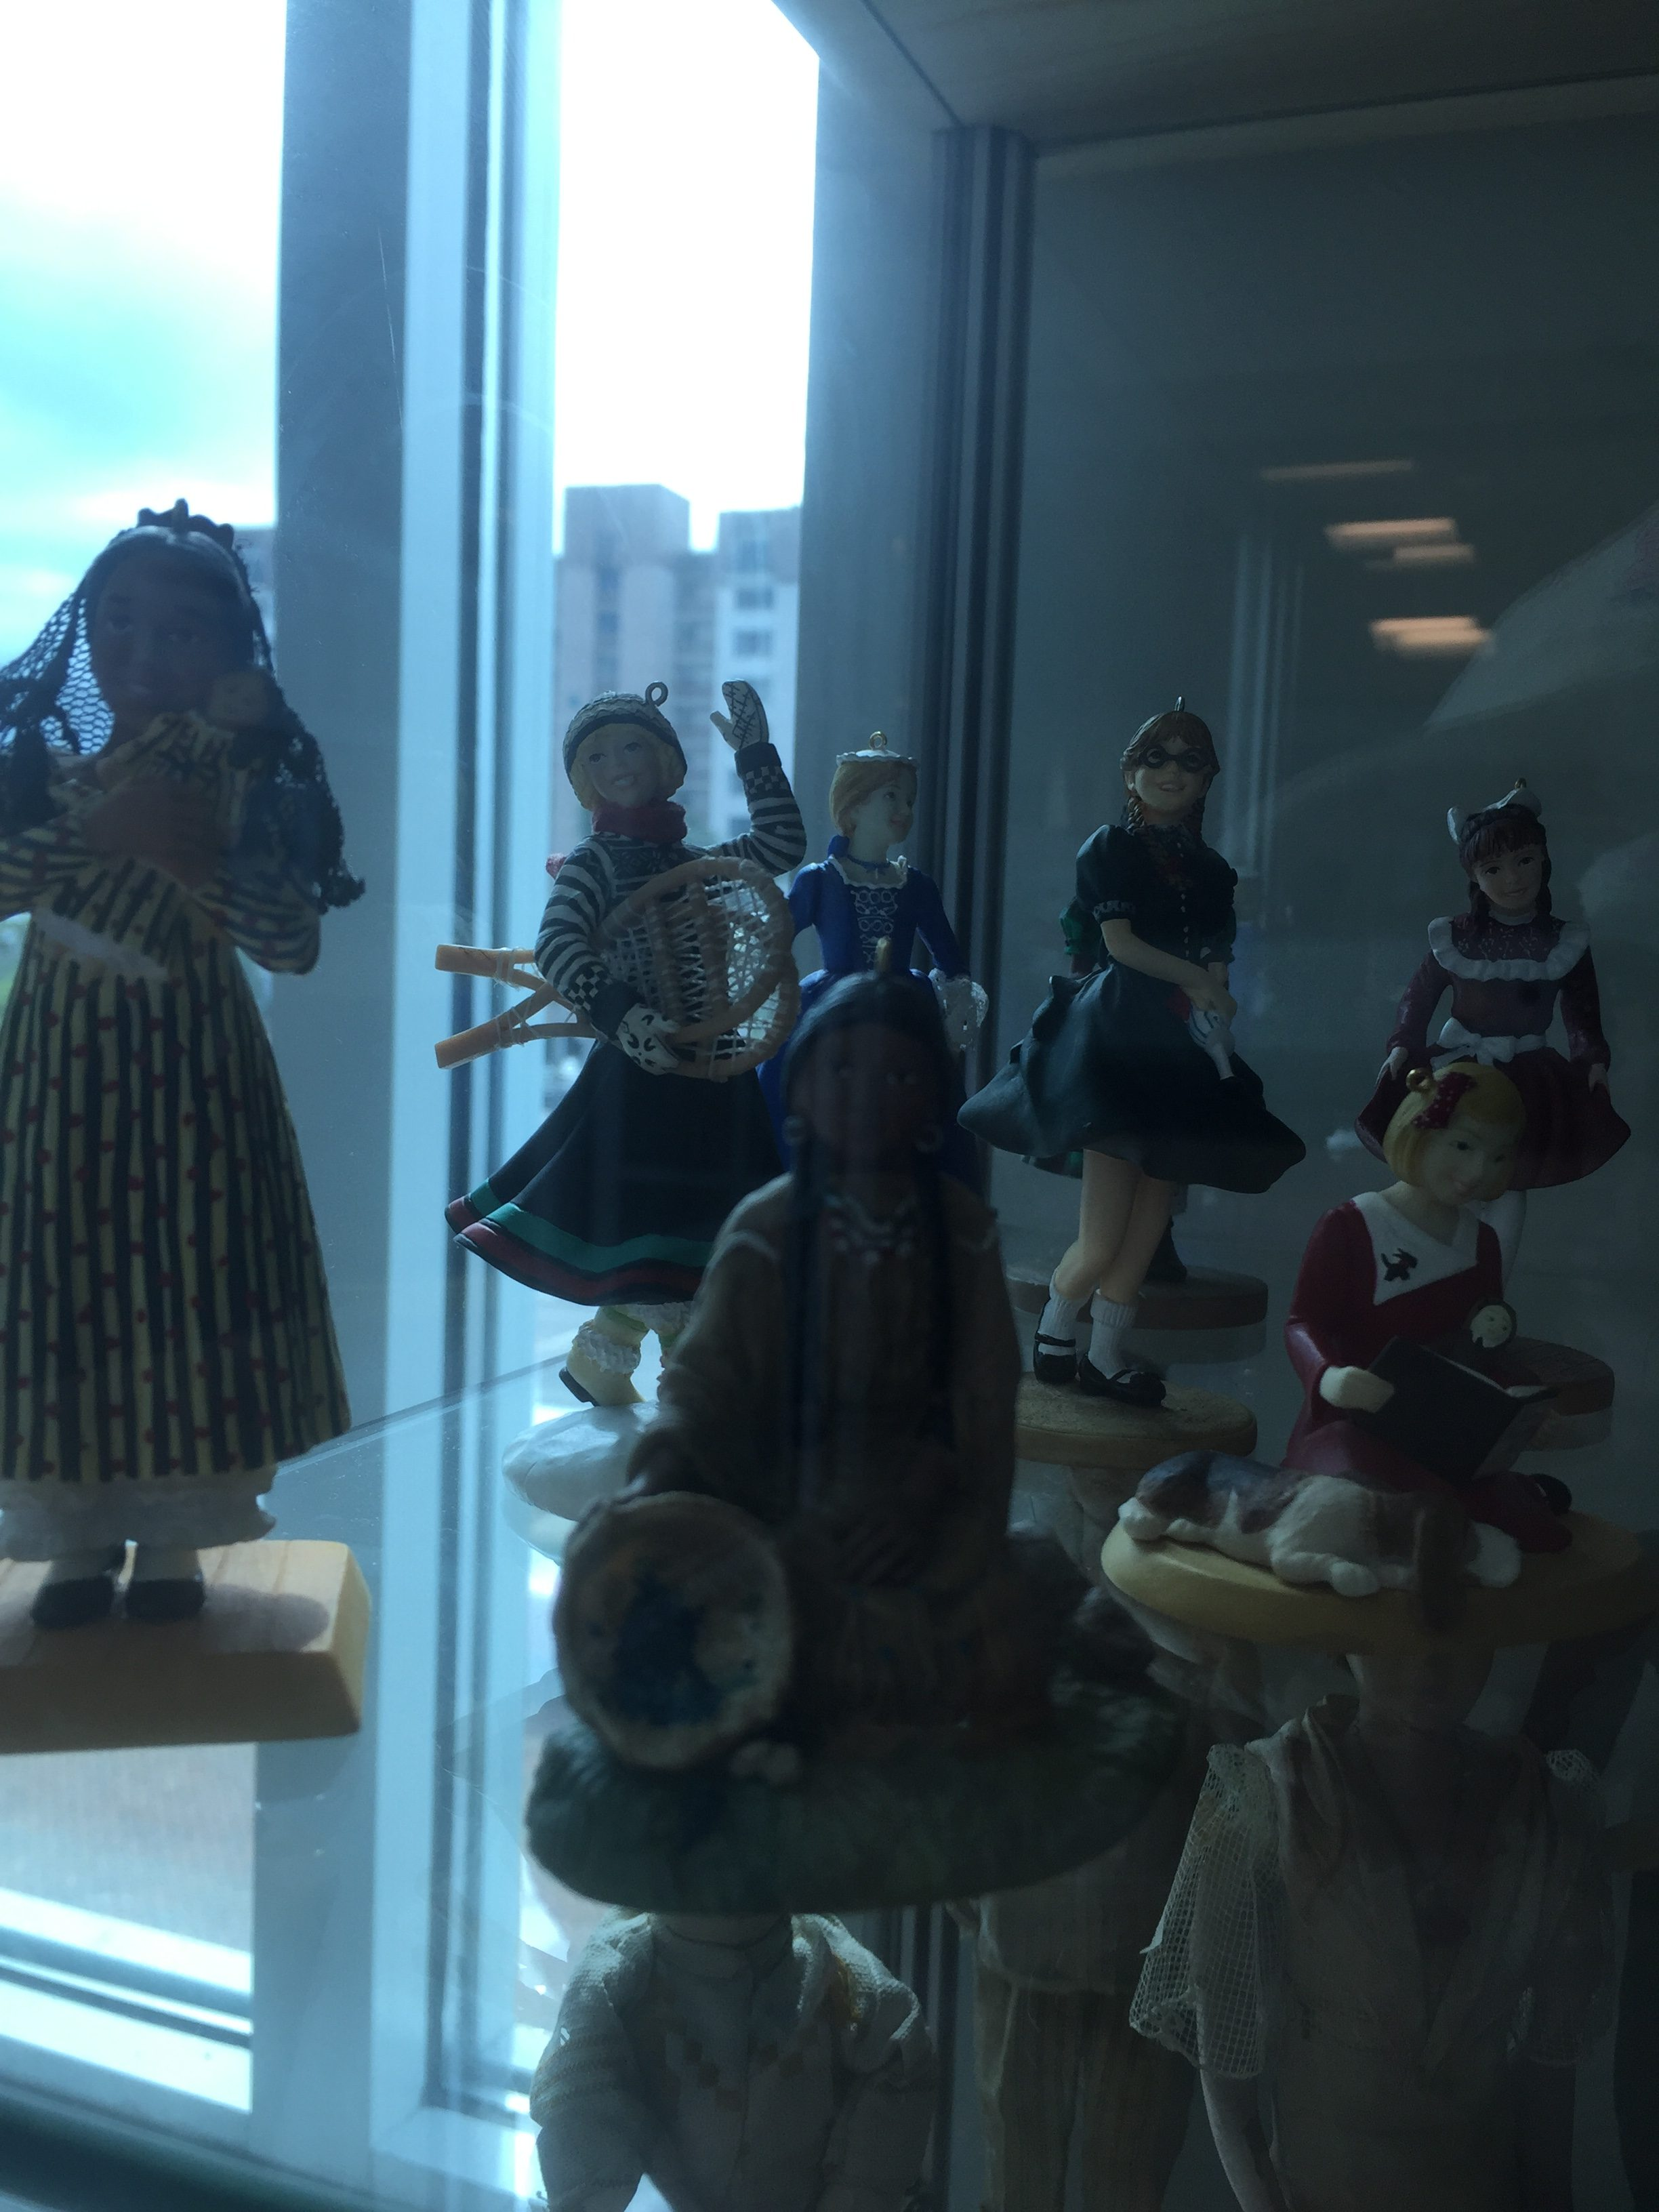 Sorry for the poor image quality. There were also these doll ornaments.